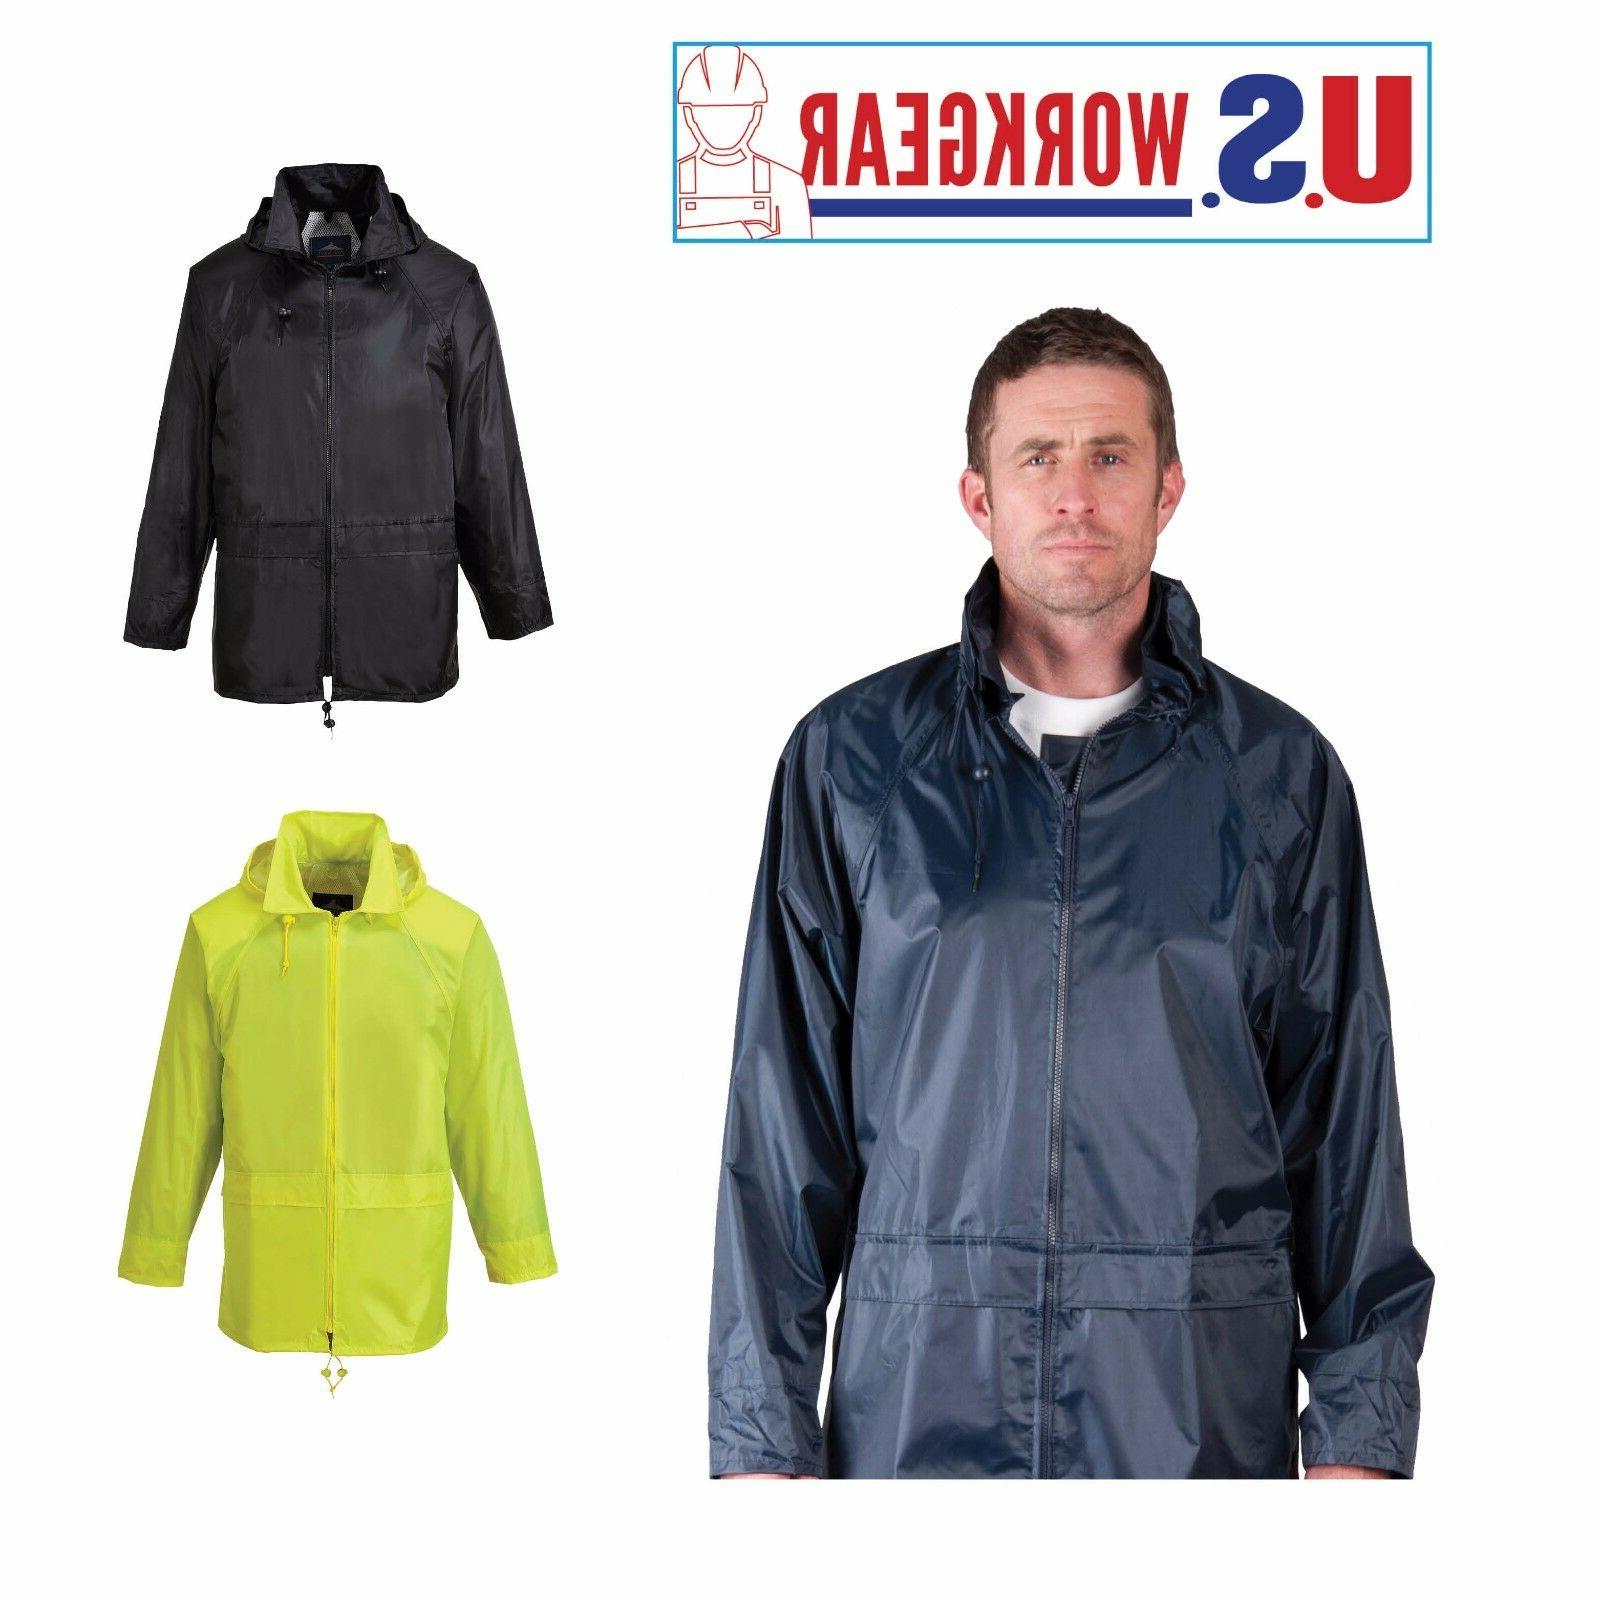 Portwest US440 Jacket, Waterproof with